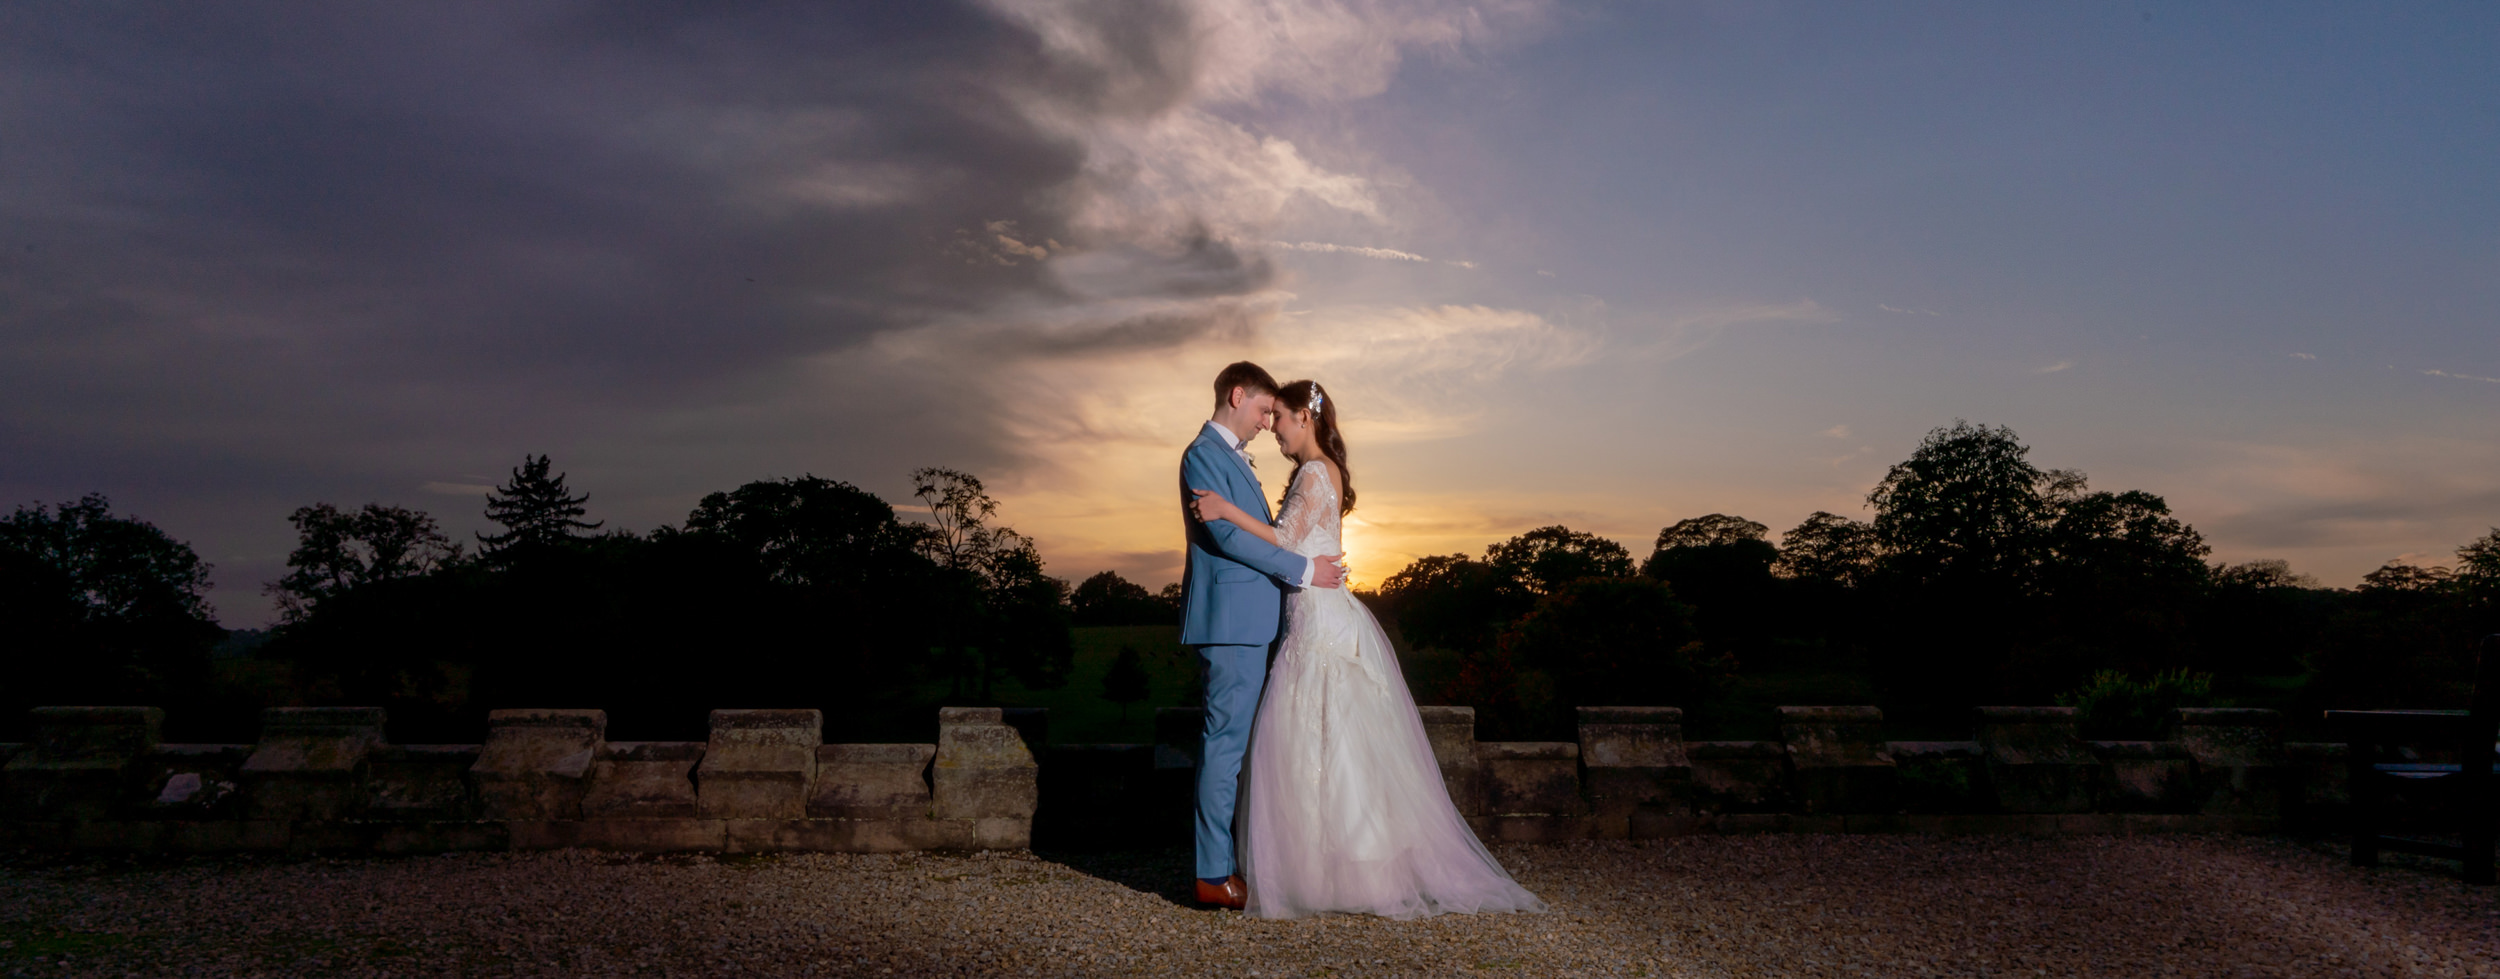 North-Yorkshire-Wedding-Photographer-Ripley-Castle-Weddings-Harrogate-York-Abraham-Photography-04